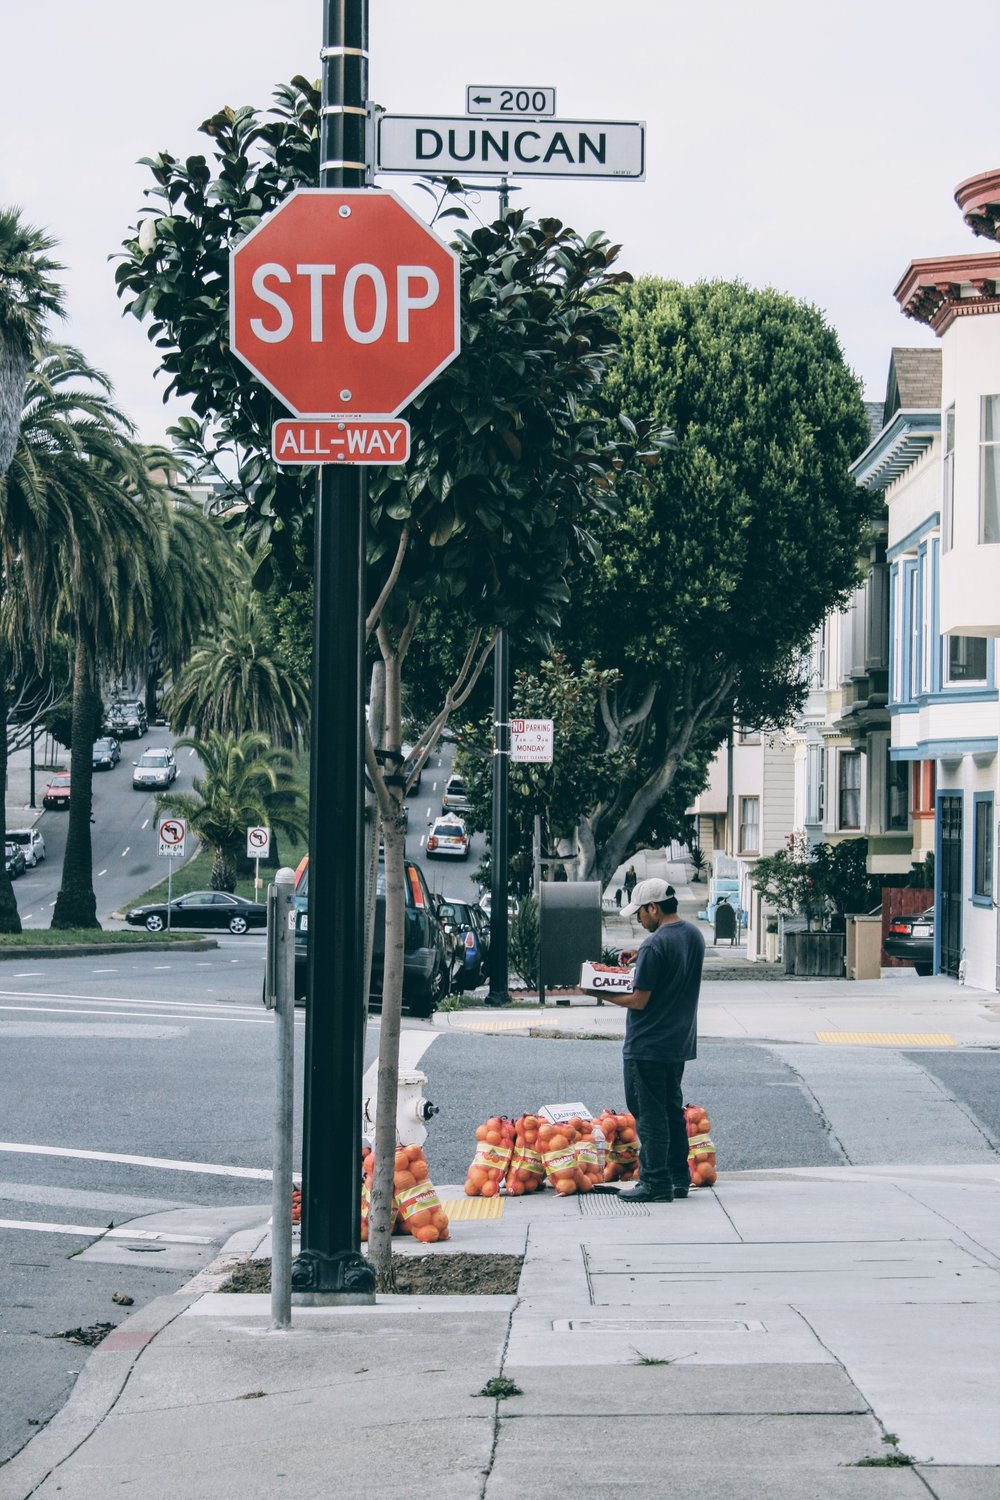 Oranges on sale on Dolores street